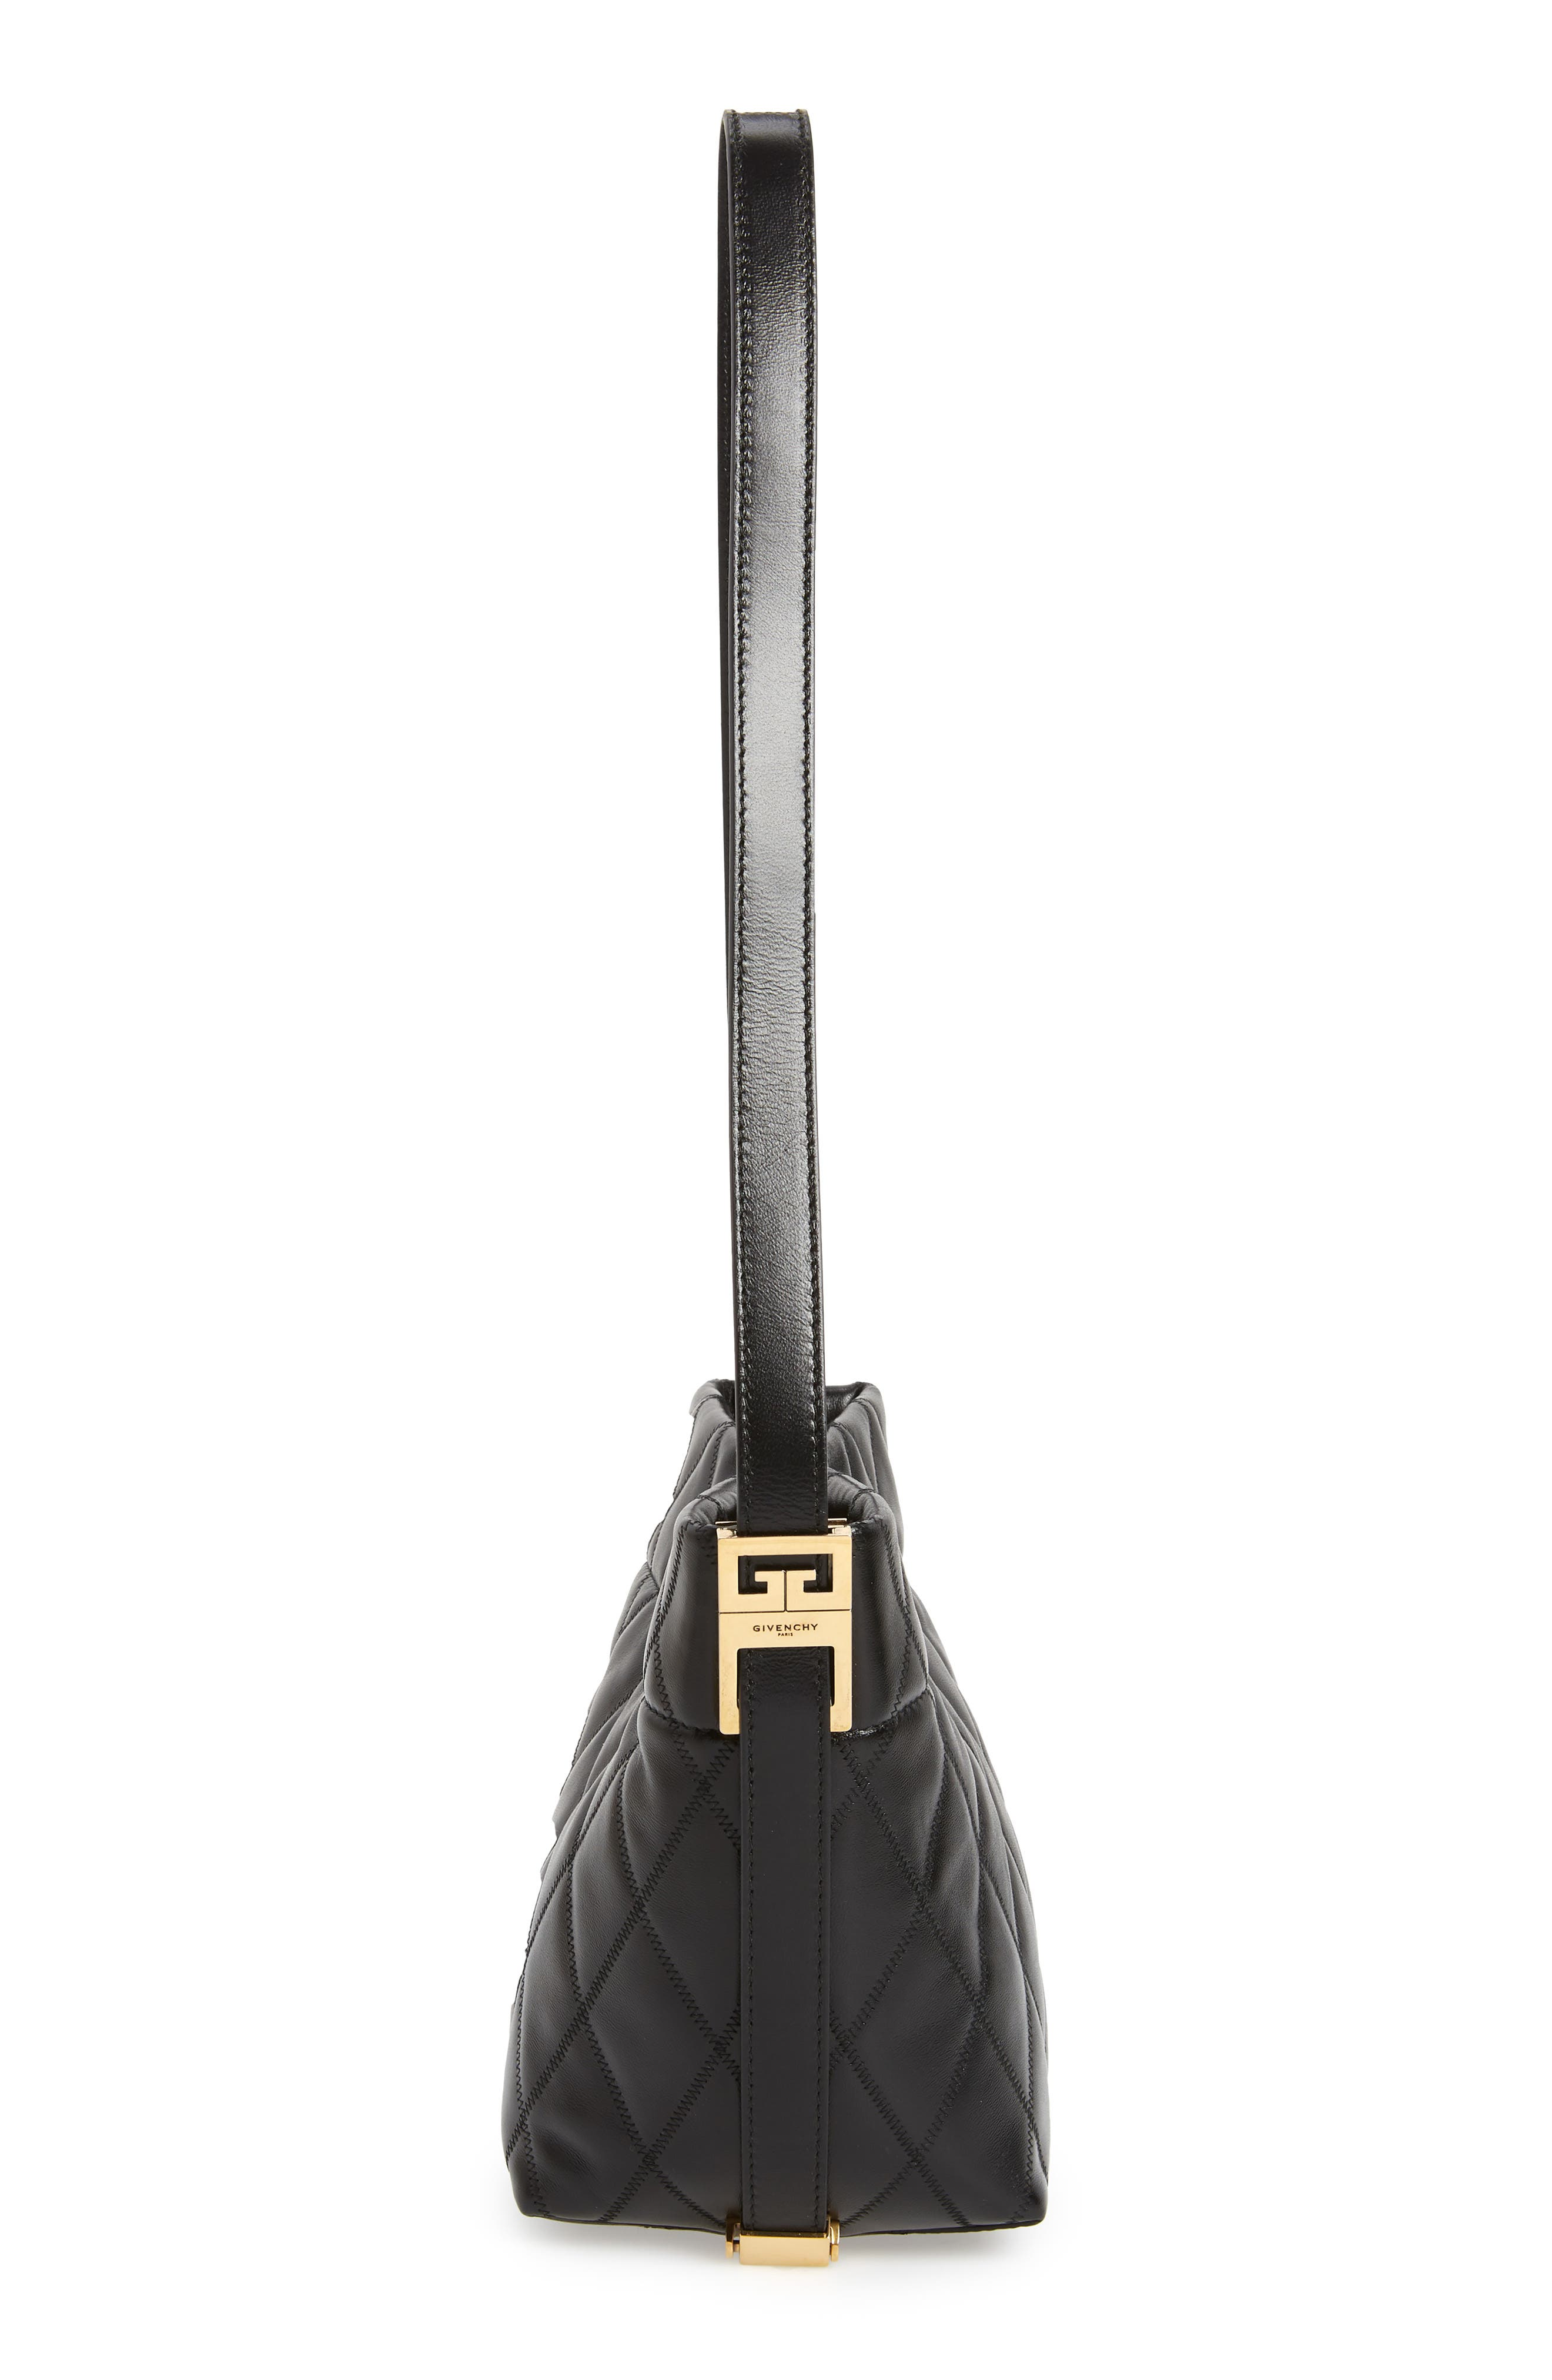 GIVENCHY,                             Mini GV Quilted Lambskin Leather Bucket Bag,                             Alternate thumbnail 6, color,                             BLACK